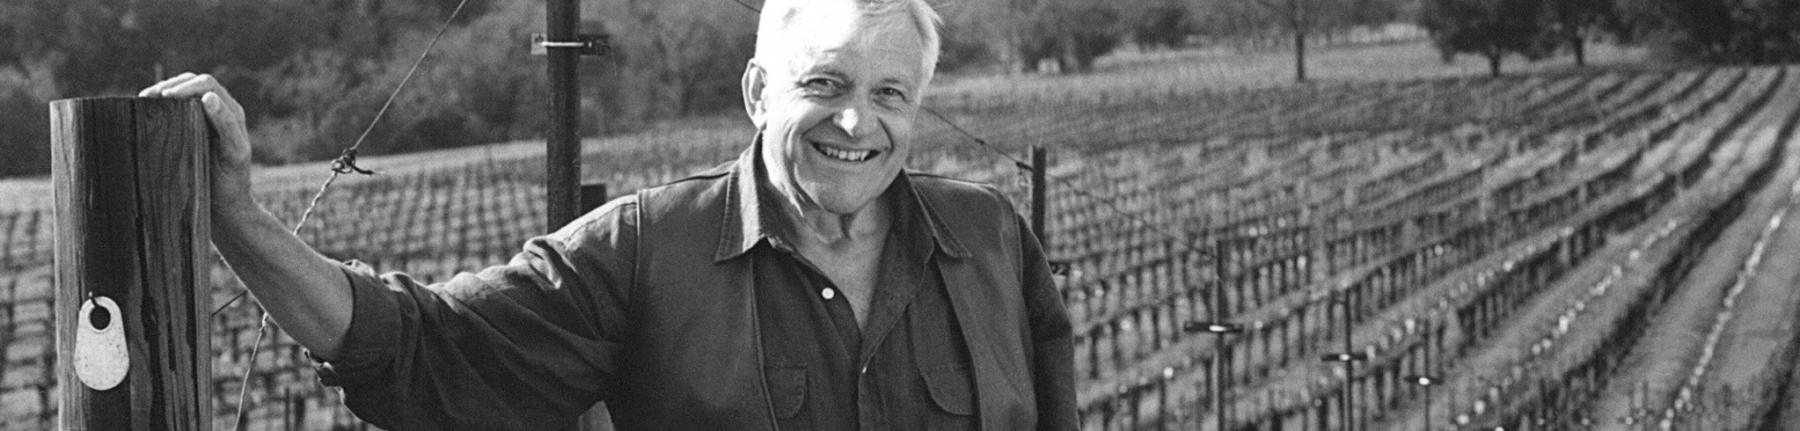 Jackson Family Wines founder Jess Jackson in his vineyard in the early days of the company